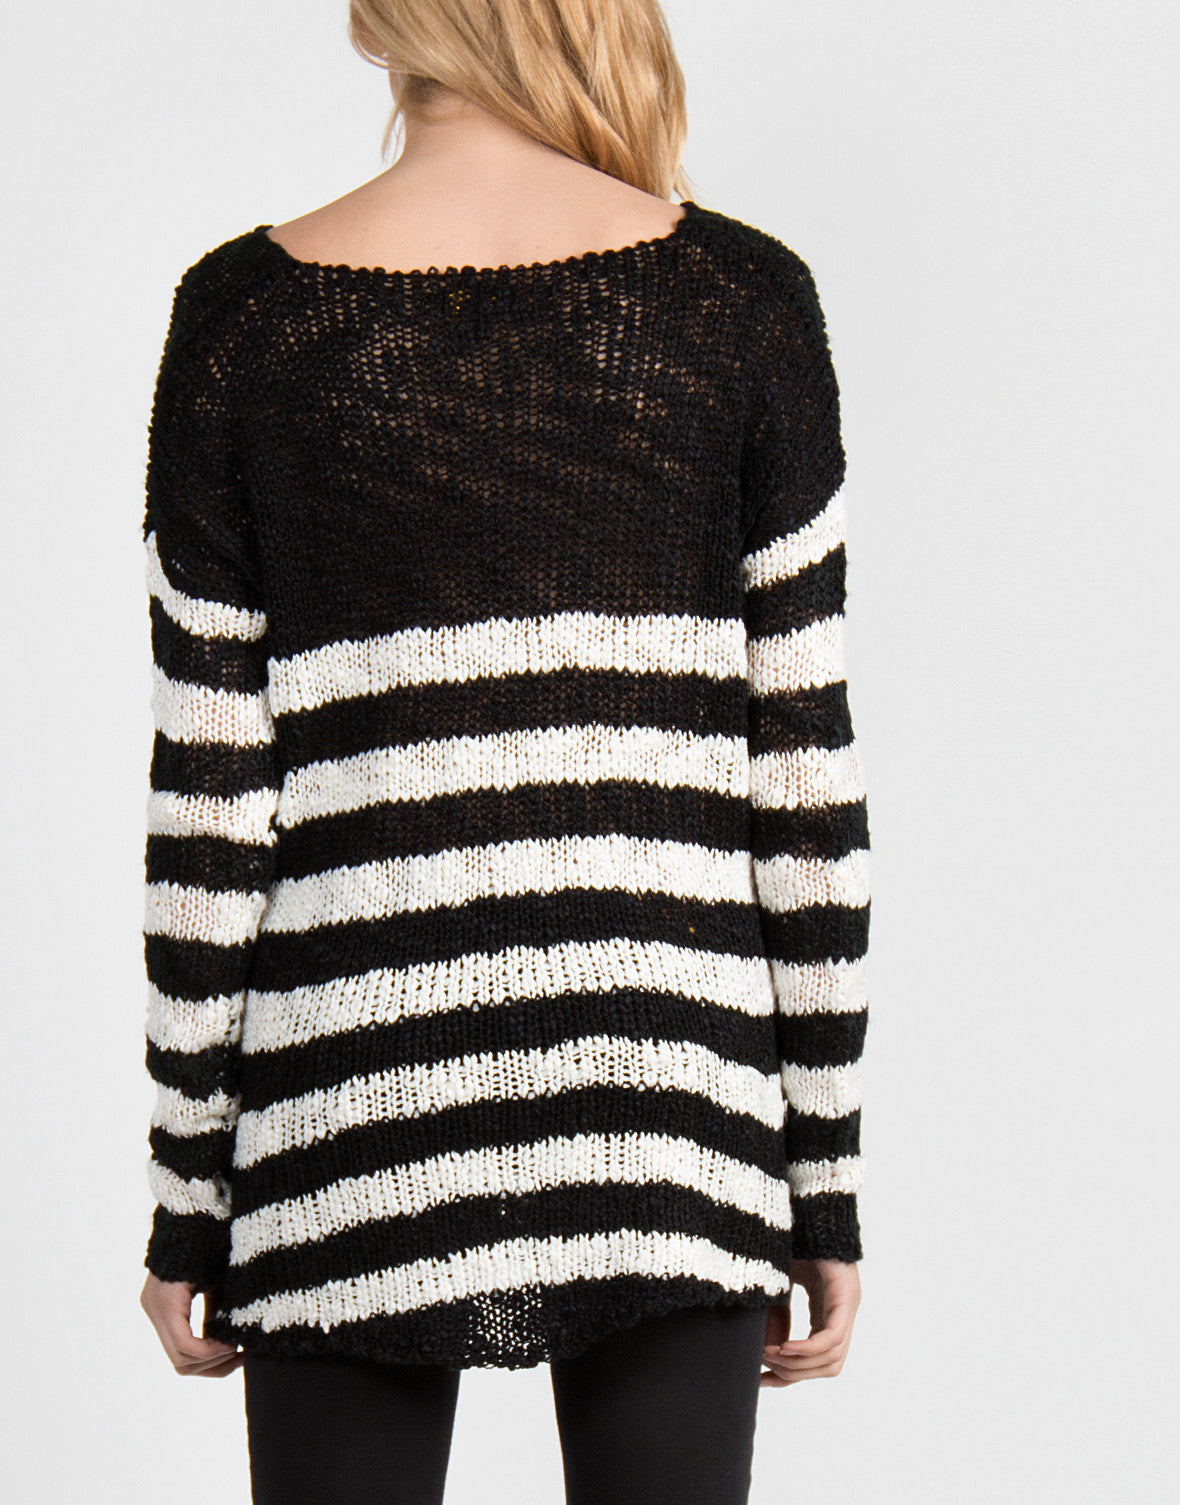 Dreamy Black and White Striped Sweater - 2020AVE